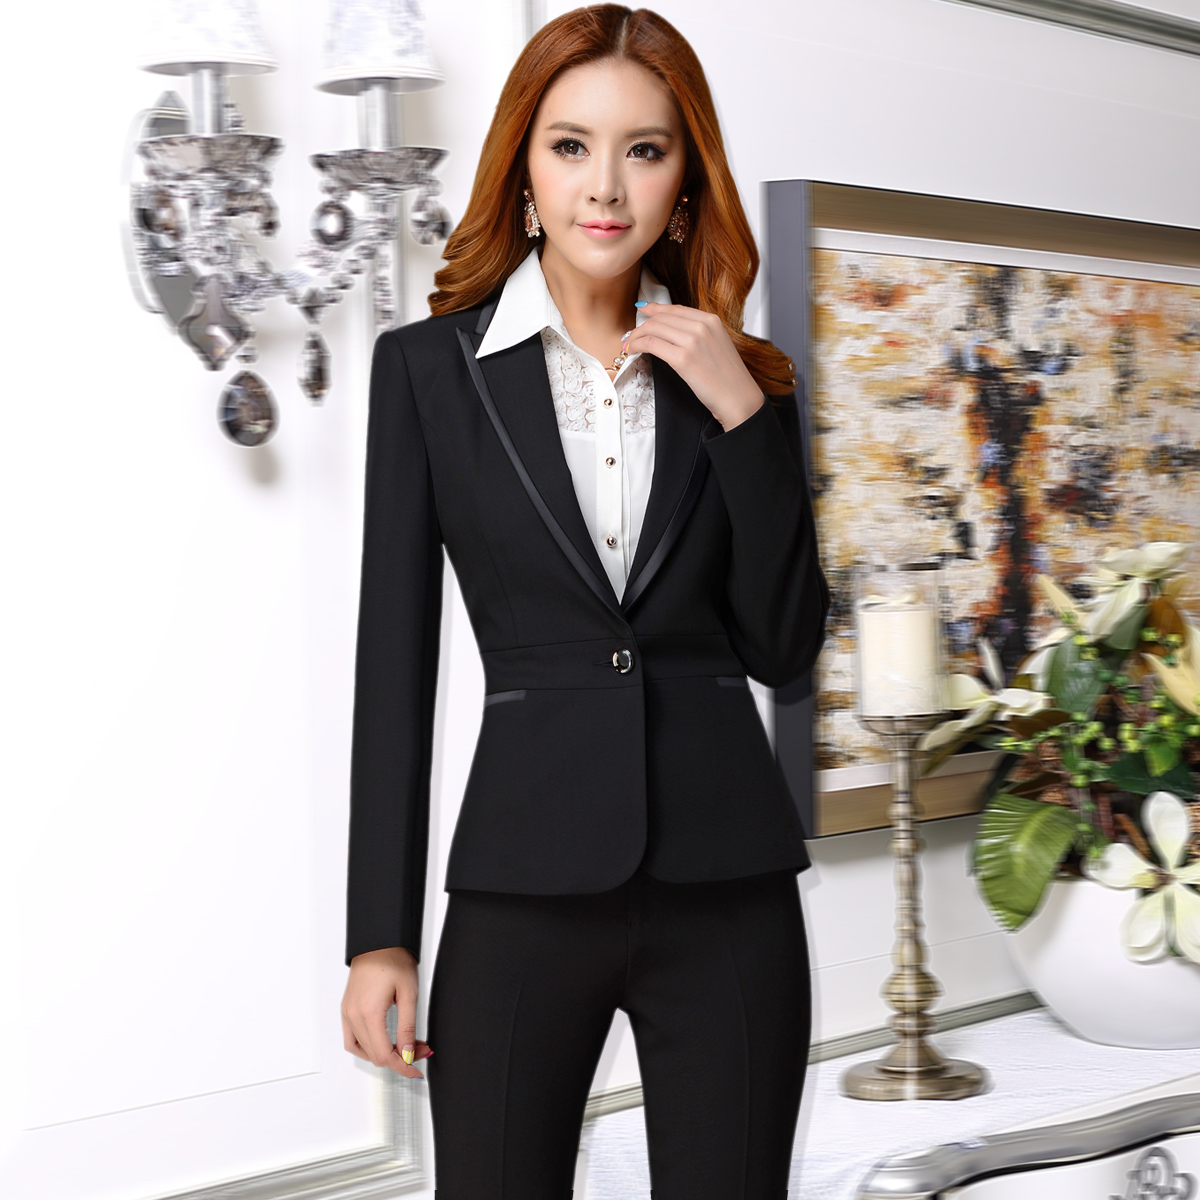 2014 New Style Women Business Suits Fashion Formal Office Suits With Pants Slim Fit Ladies ...